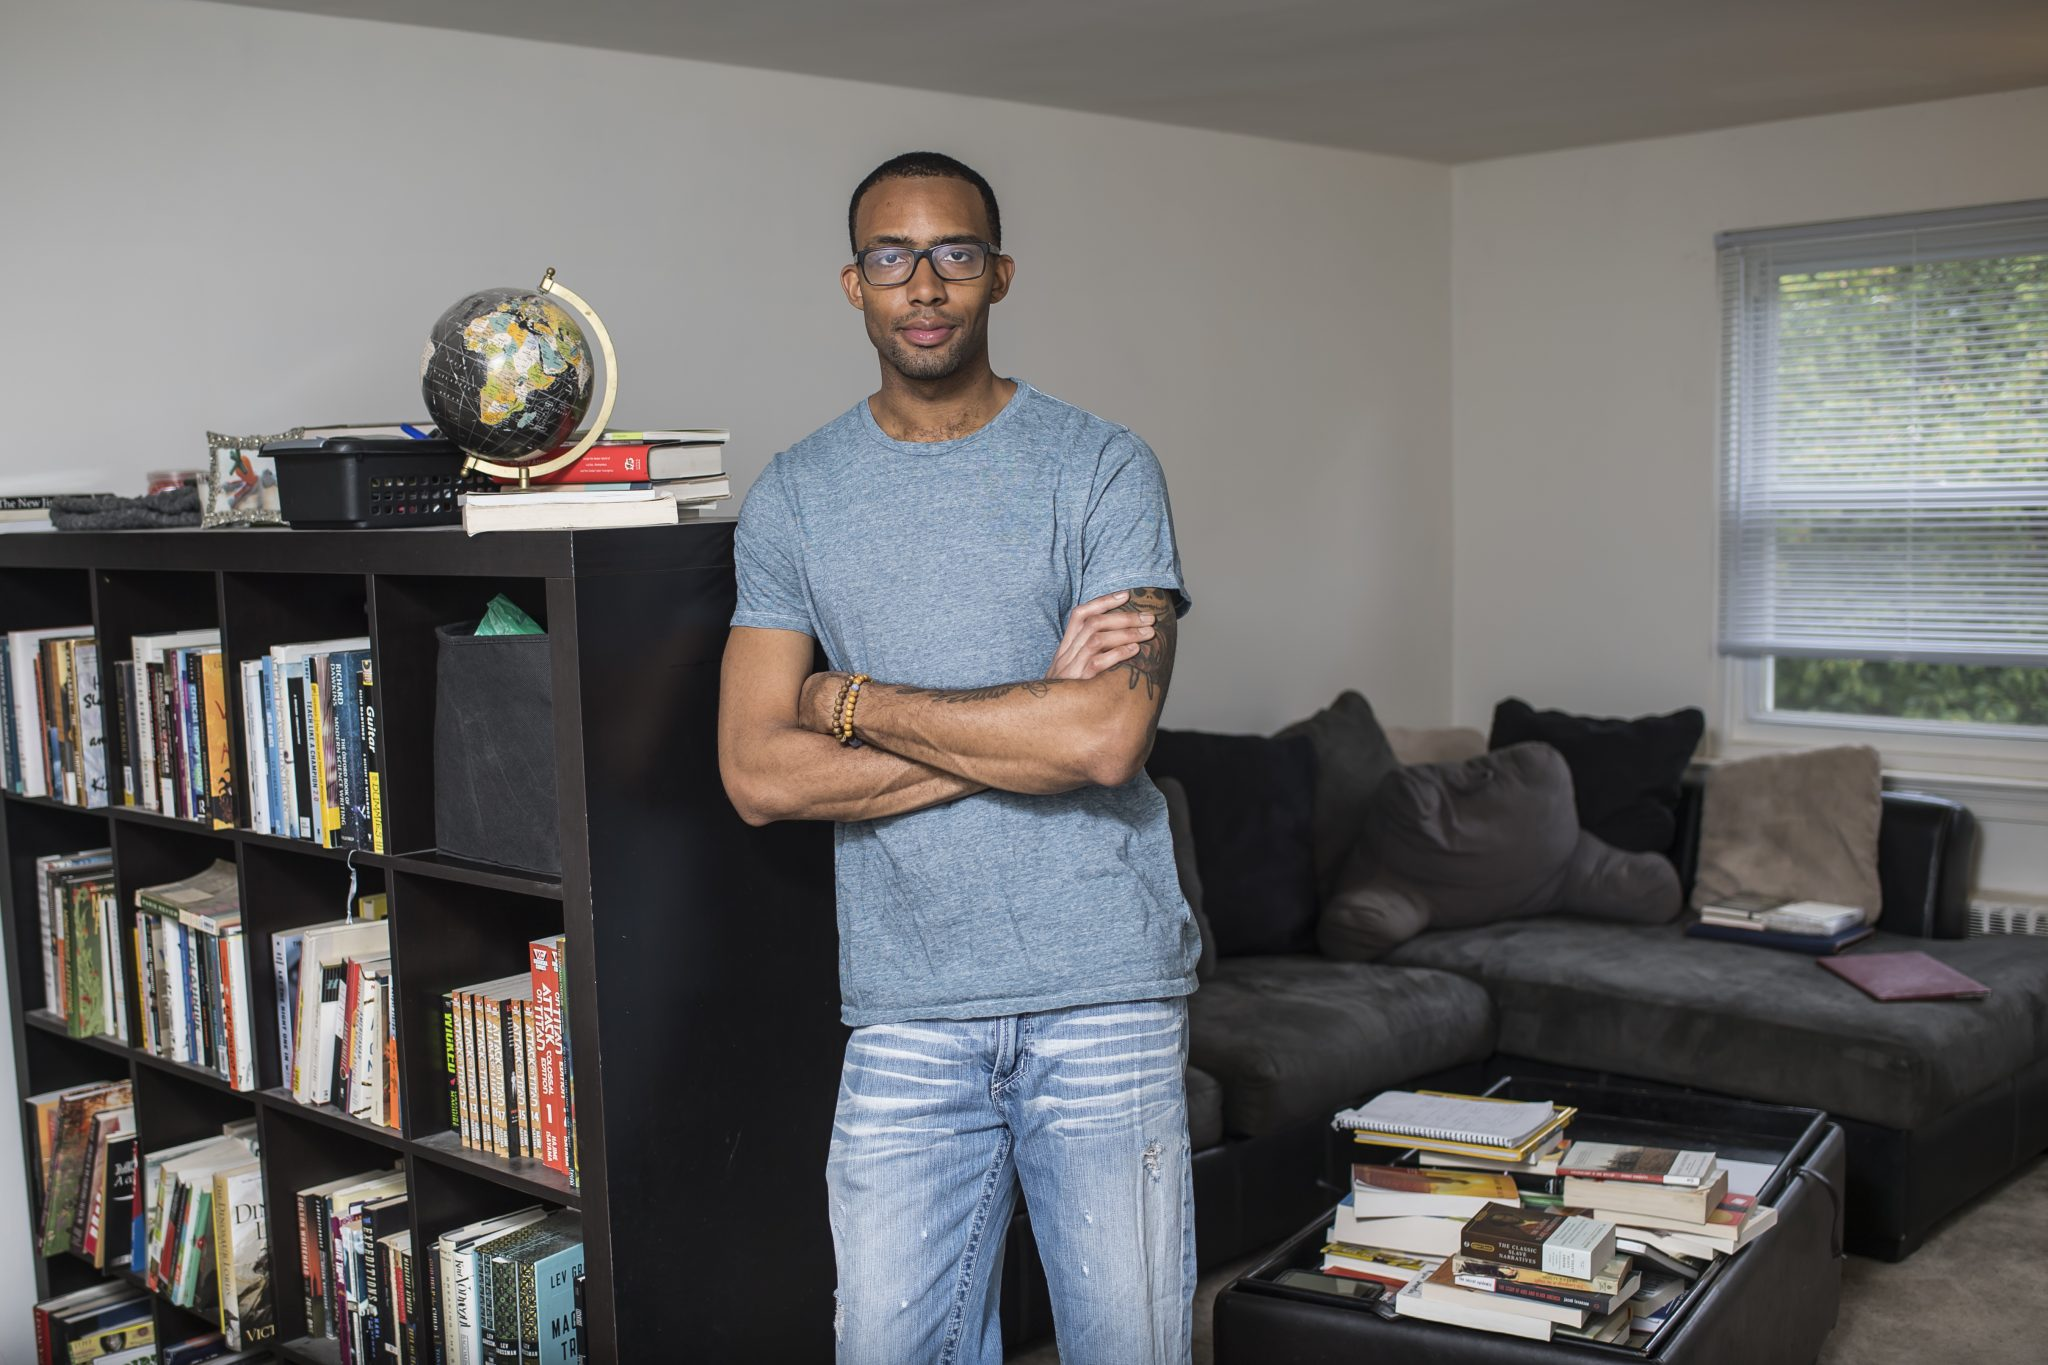 Joseph Thomas is leaning against a large bookshelf in a room filled with a big couch and various writing supplies. He is wearing a light grey shirt and jeans.